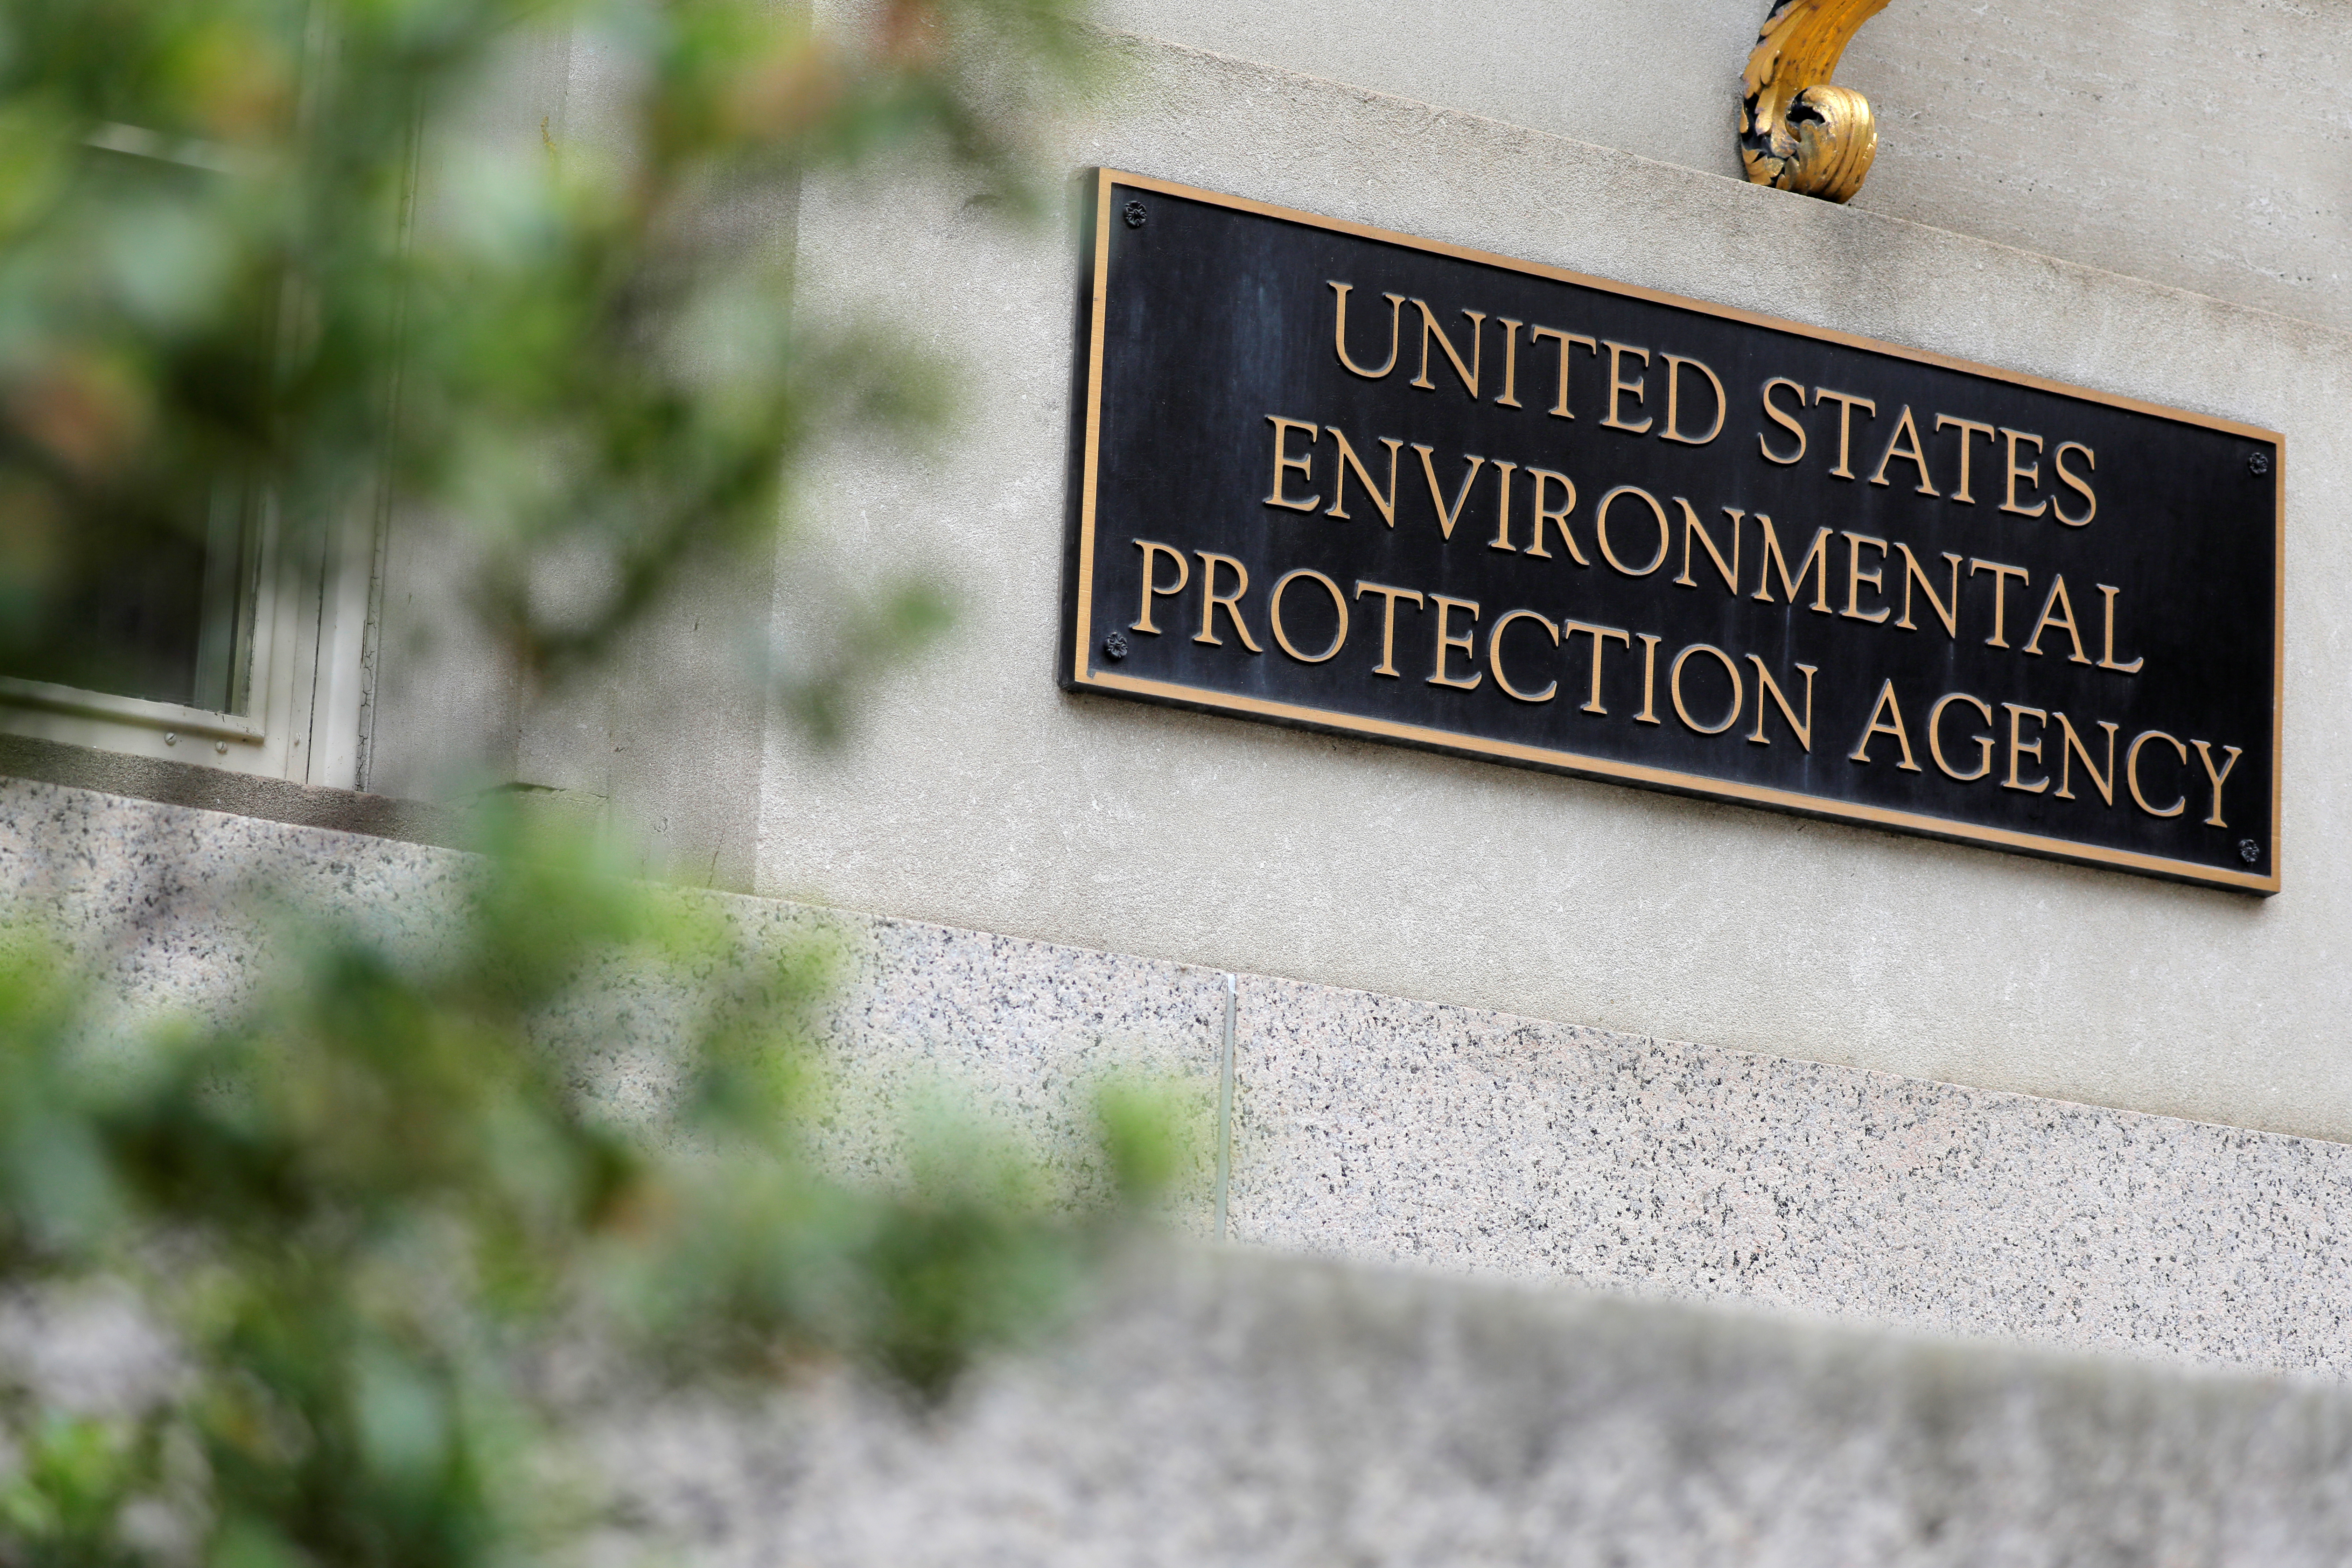 The headquarters of the United States Environmental Protection Agency in Washington, D.C. REUTERS/Andrew Kelly